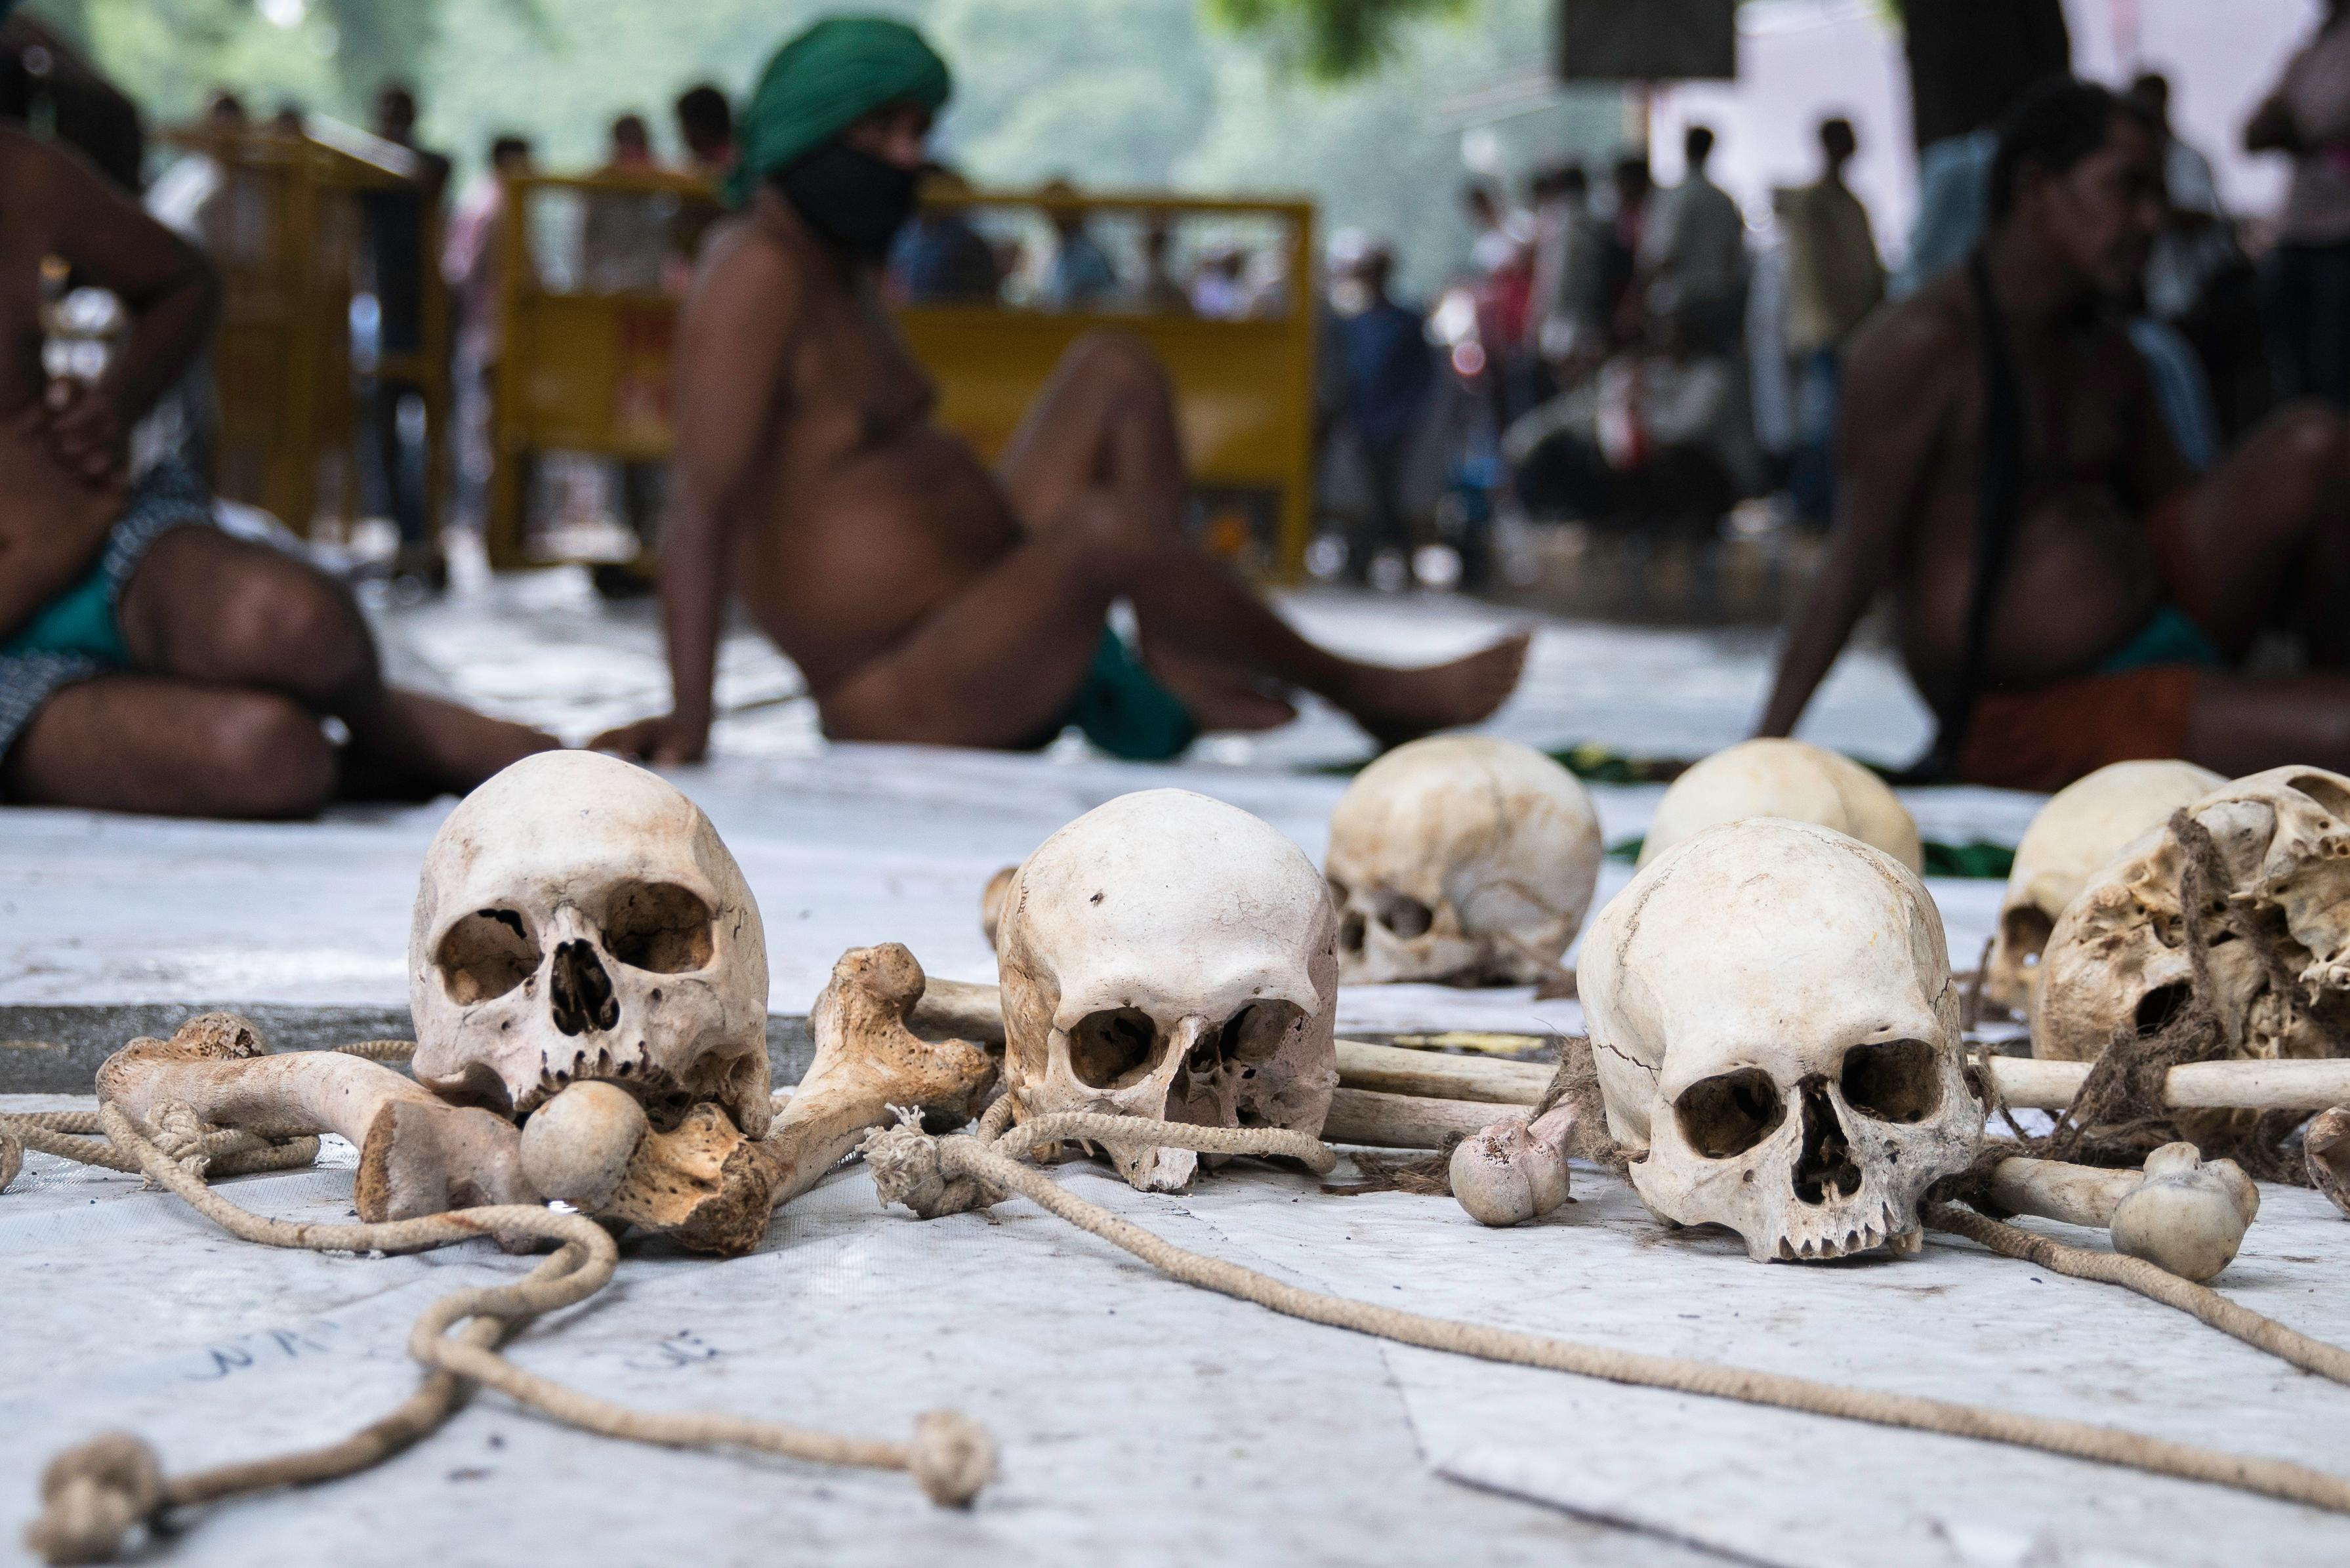 Suicides of nearly 60,000 Indian farmers linked to climate change, study claims